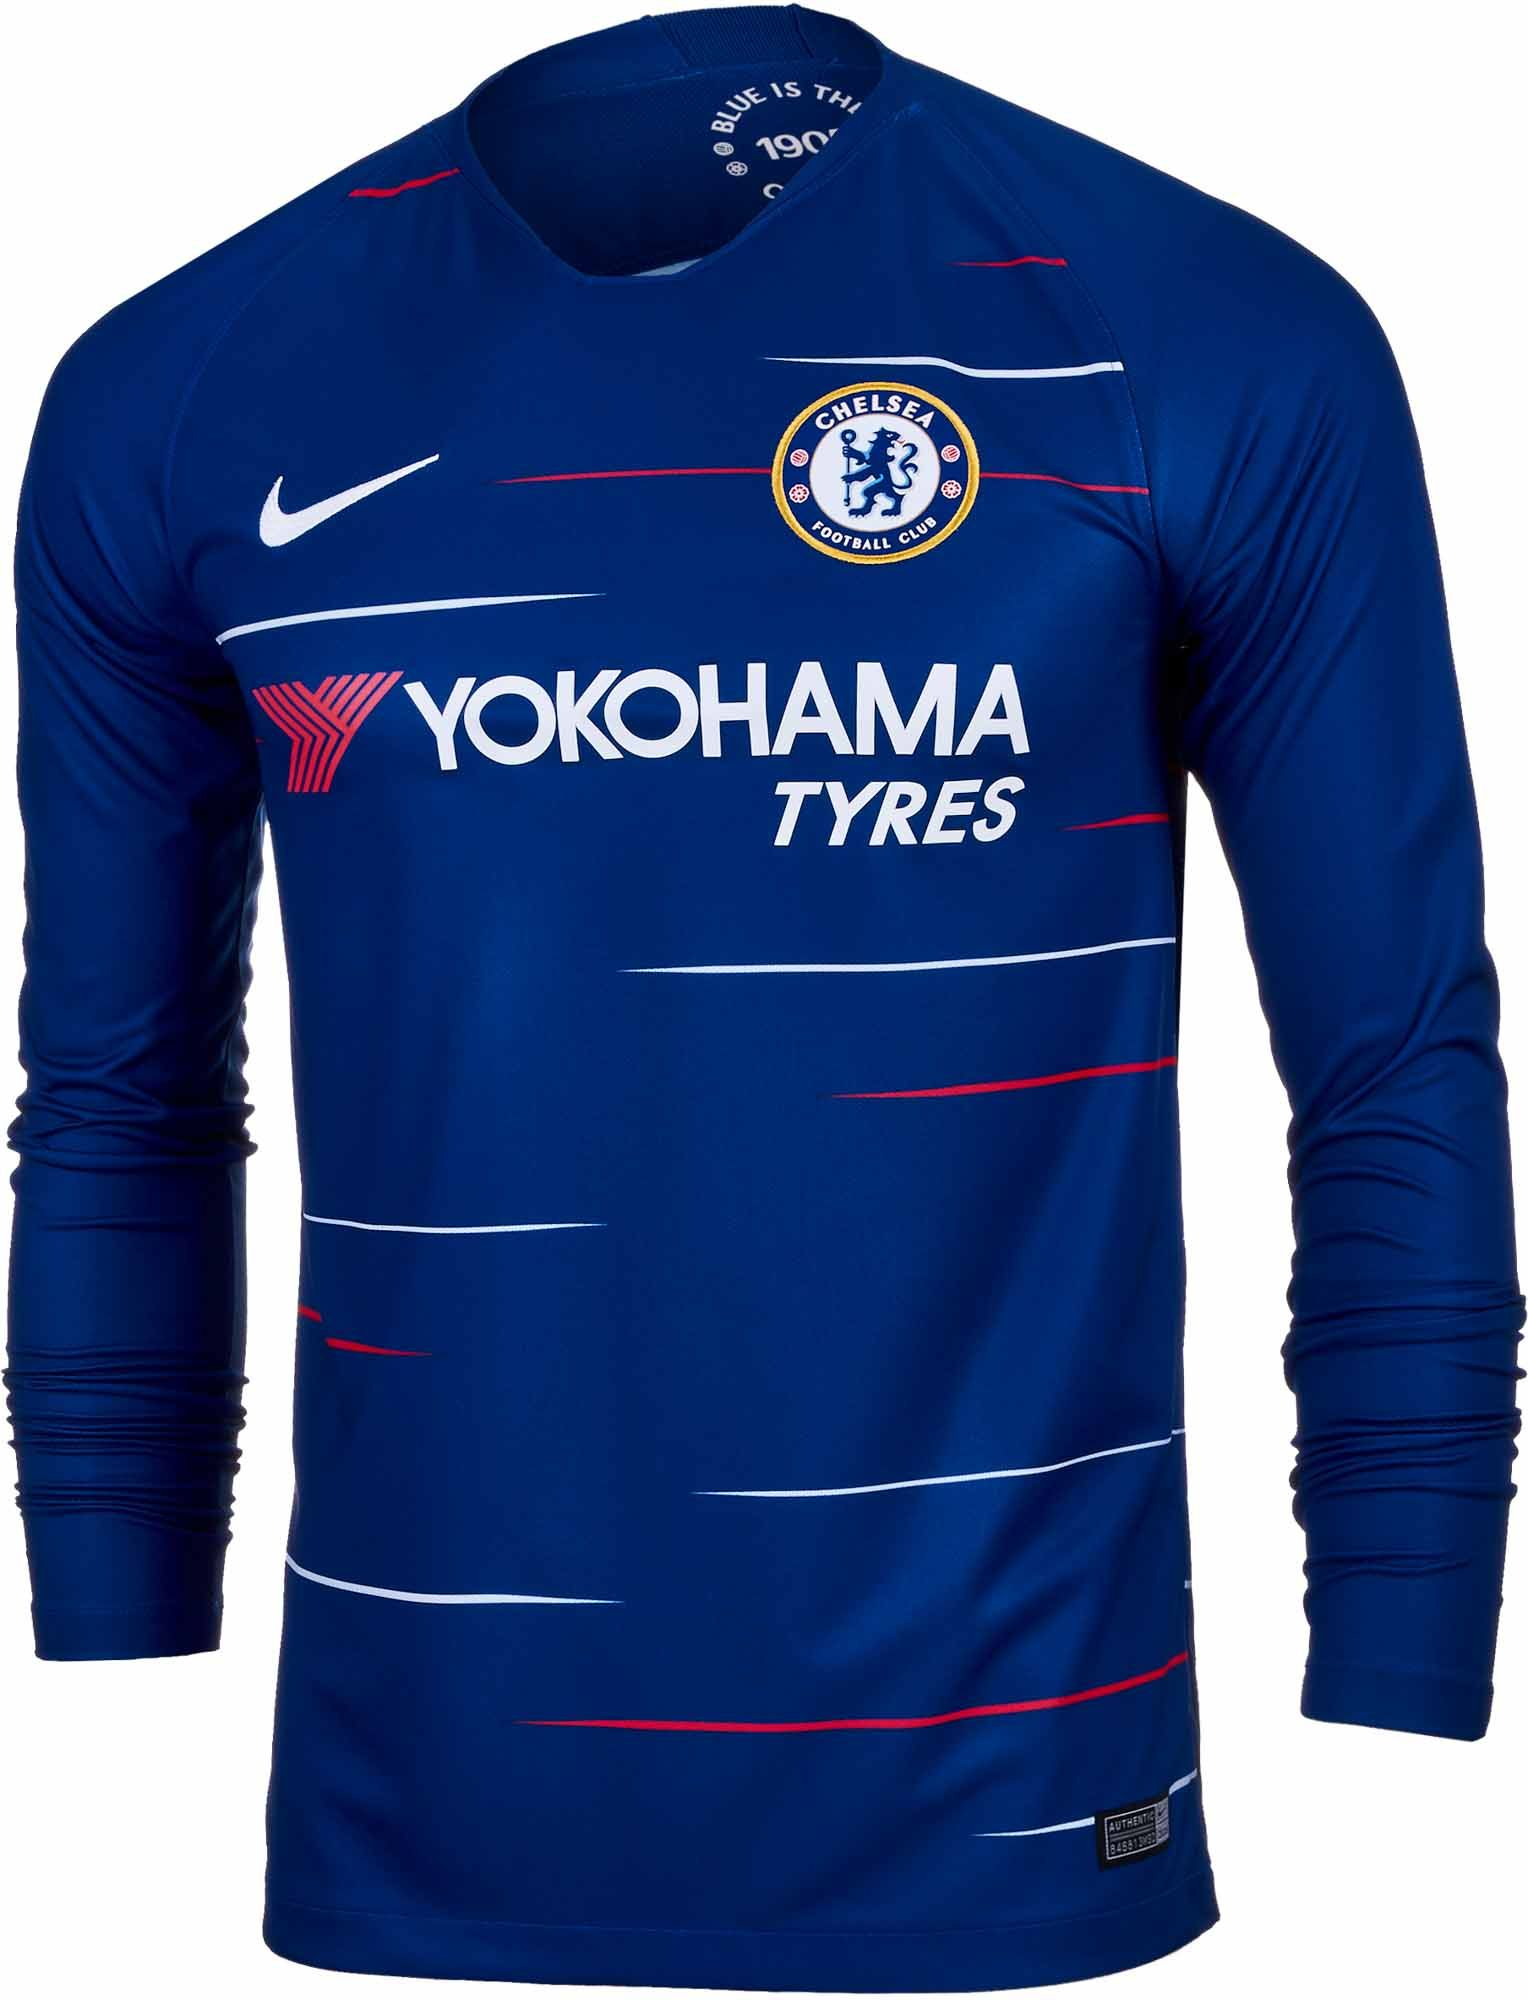 b52291b493d 2018 19 adidas Chelsea FC L S Home Jersey. Hot at soccerpro.com right now.  Get yours today.